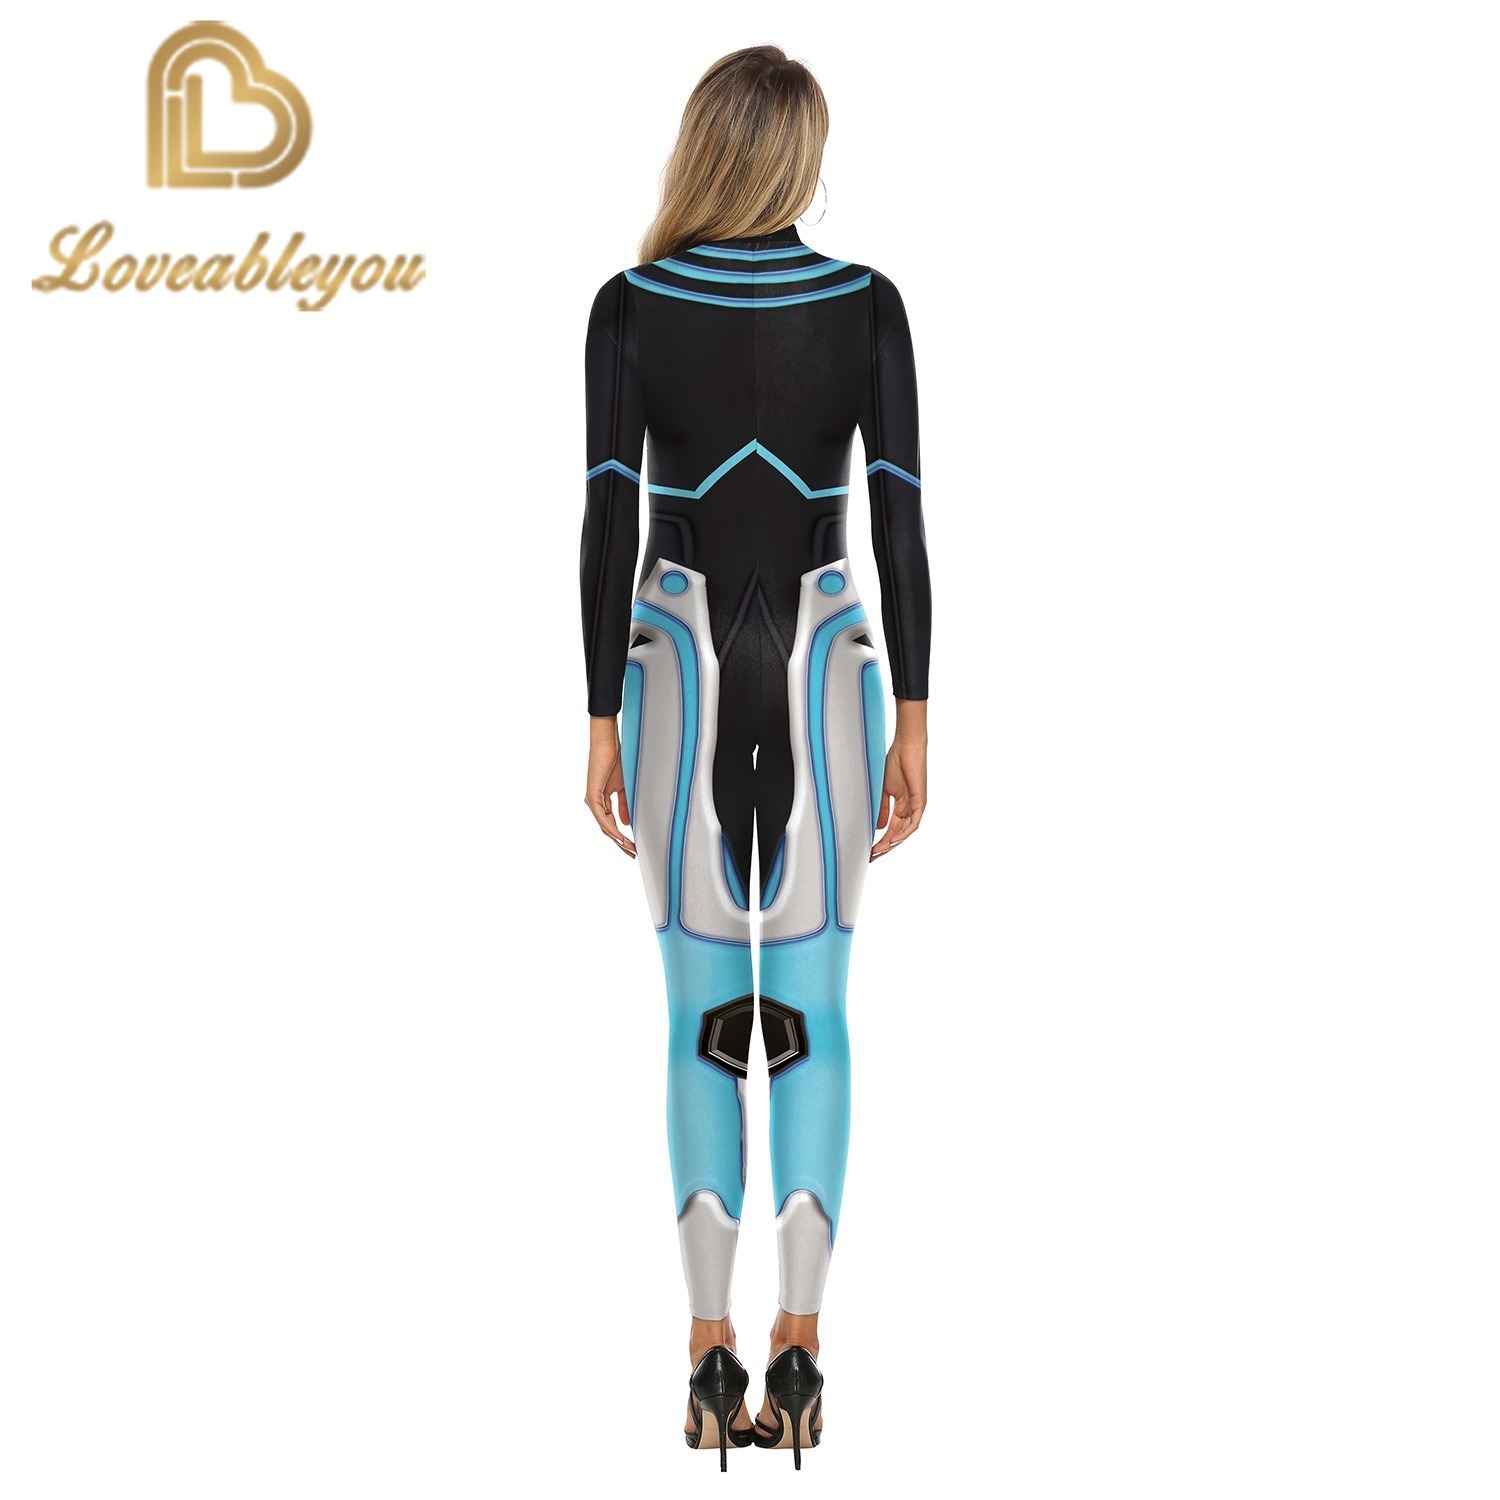 Hot Sale 2019 New Fashion Gaming Cosplay Costume 3D Printed Bodysuit for Women Party Cospaly Bodysuit Sexy Jumpsuits 2